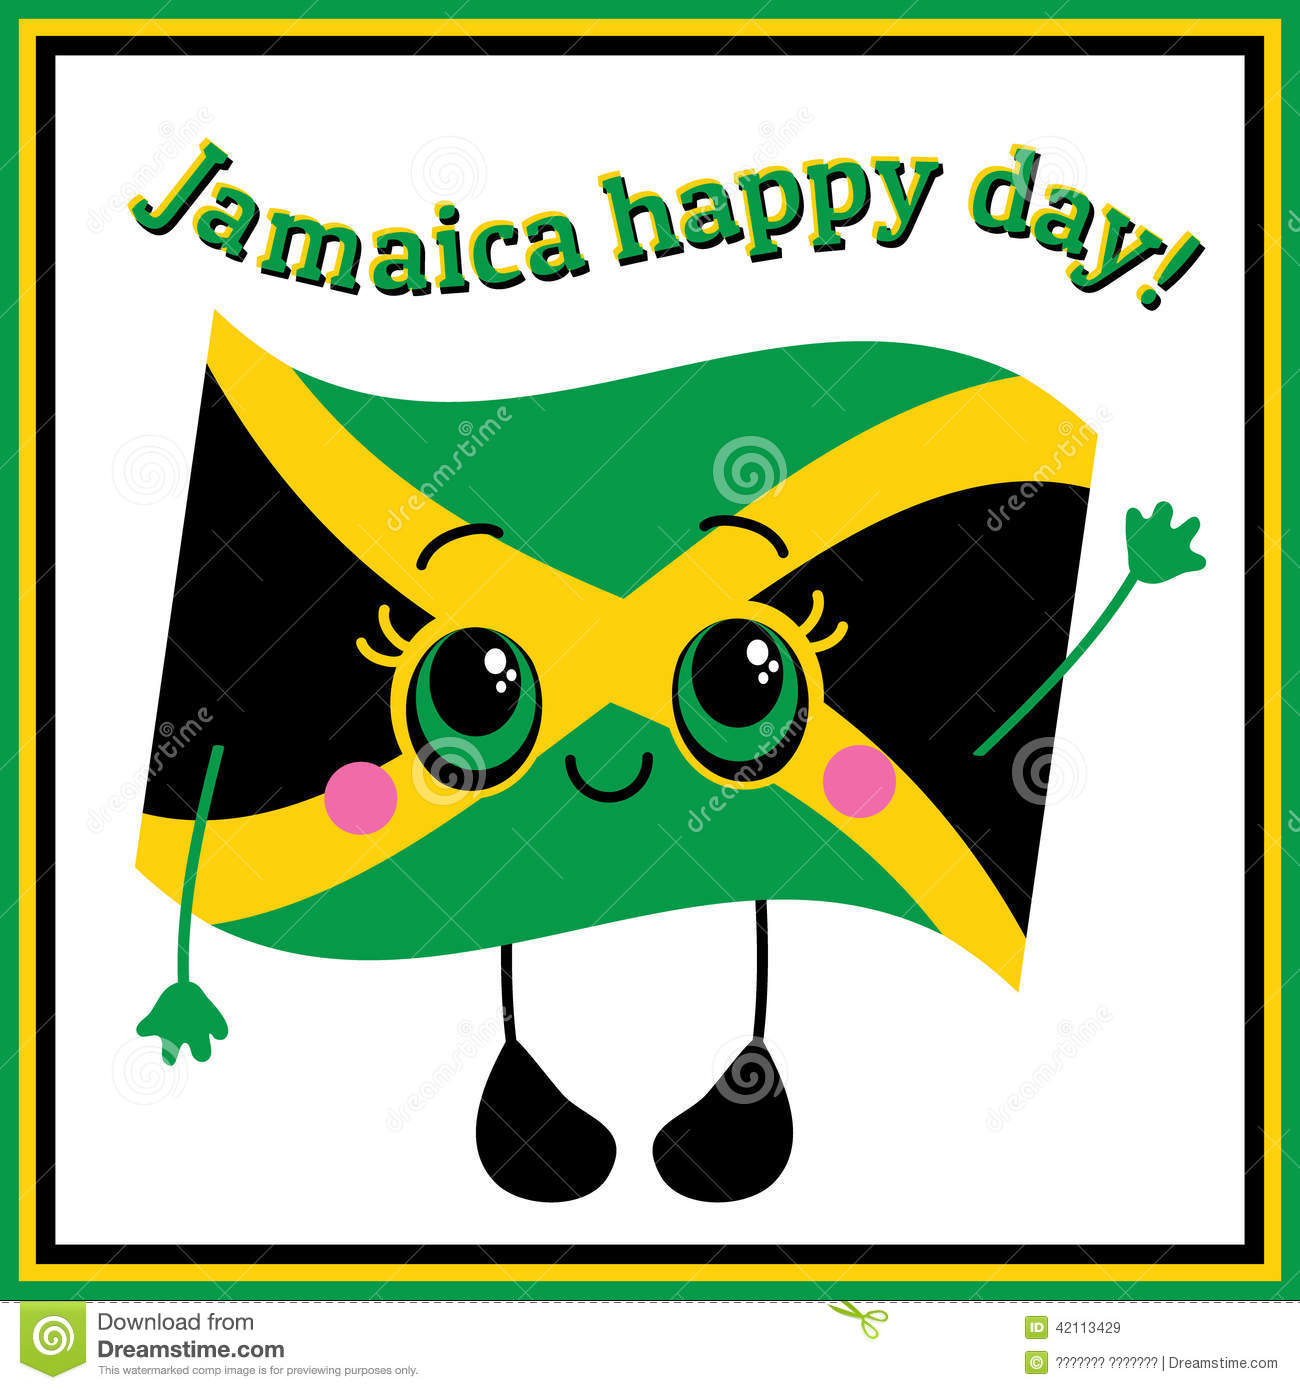 Jamaica Happy Day Greeting Card Stock Vector Illustration Of - Jamaica independence day